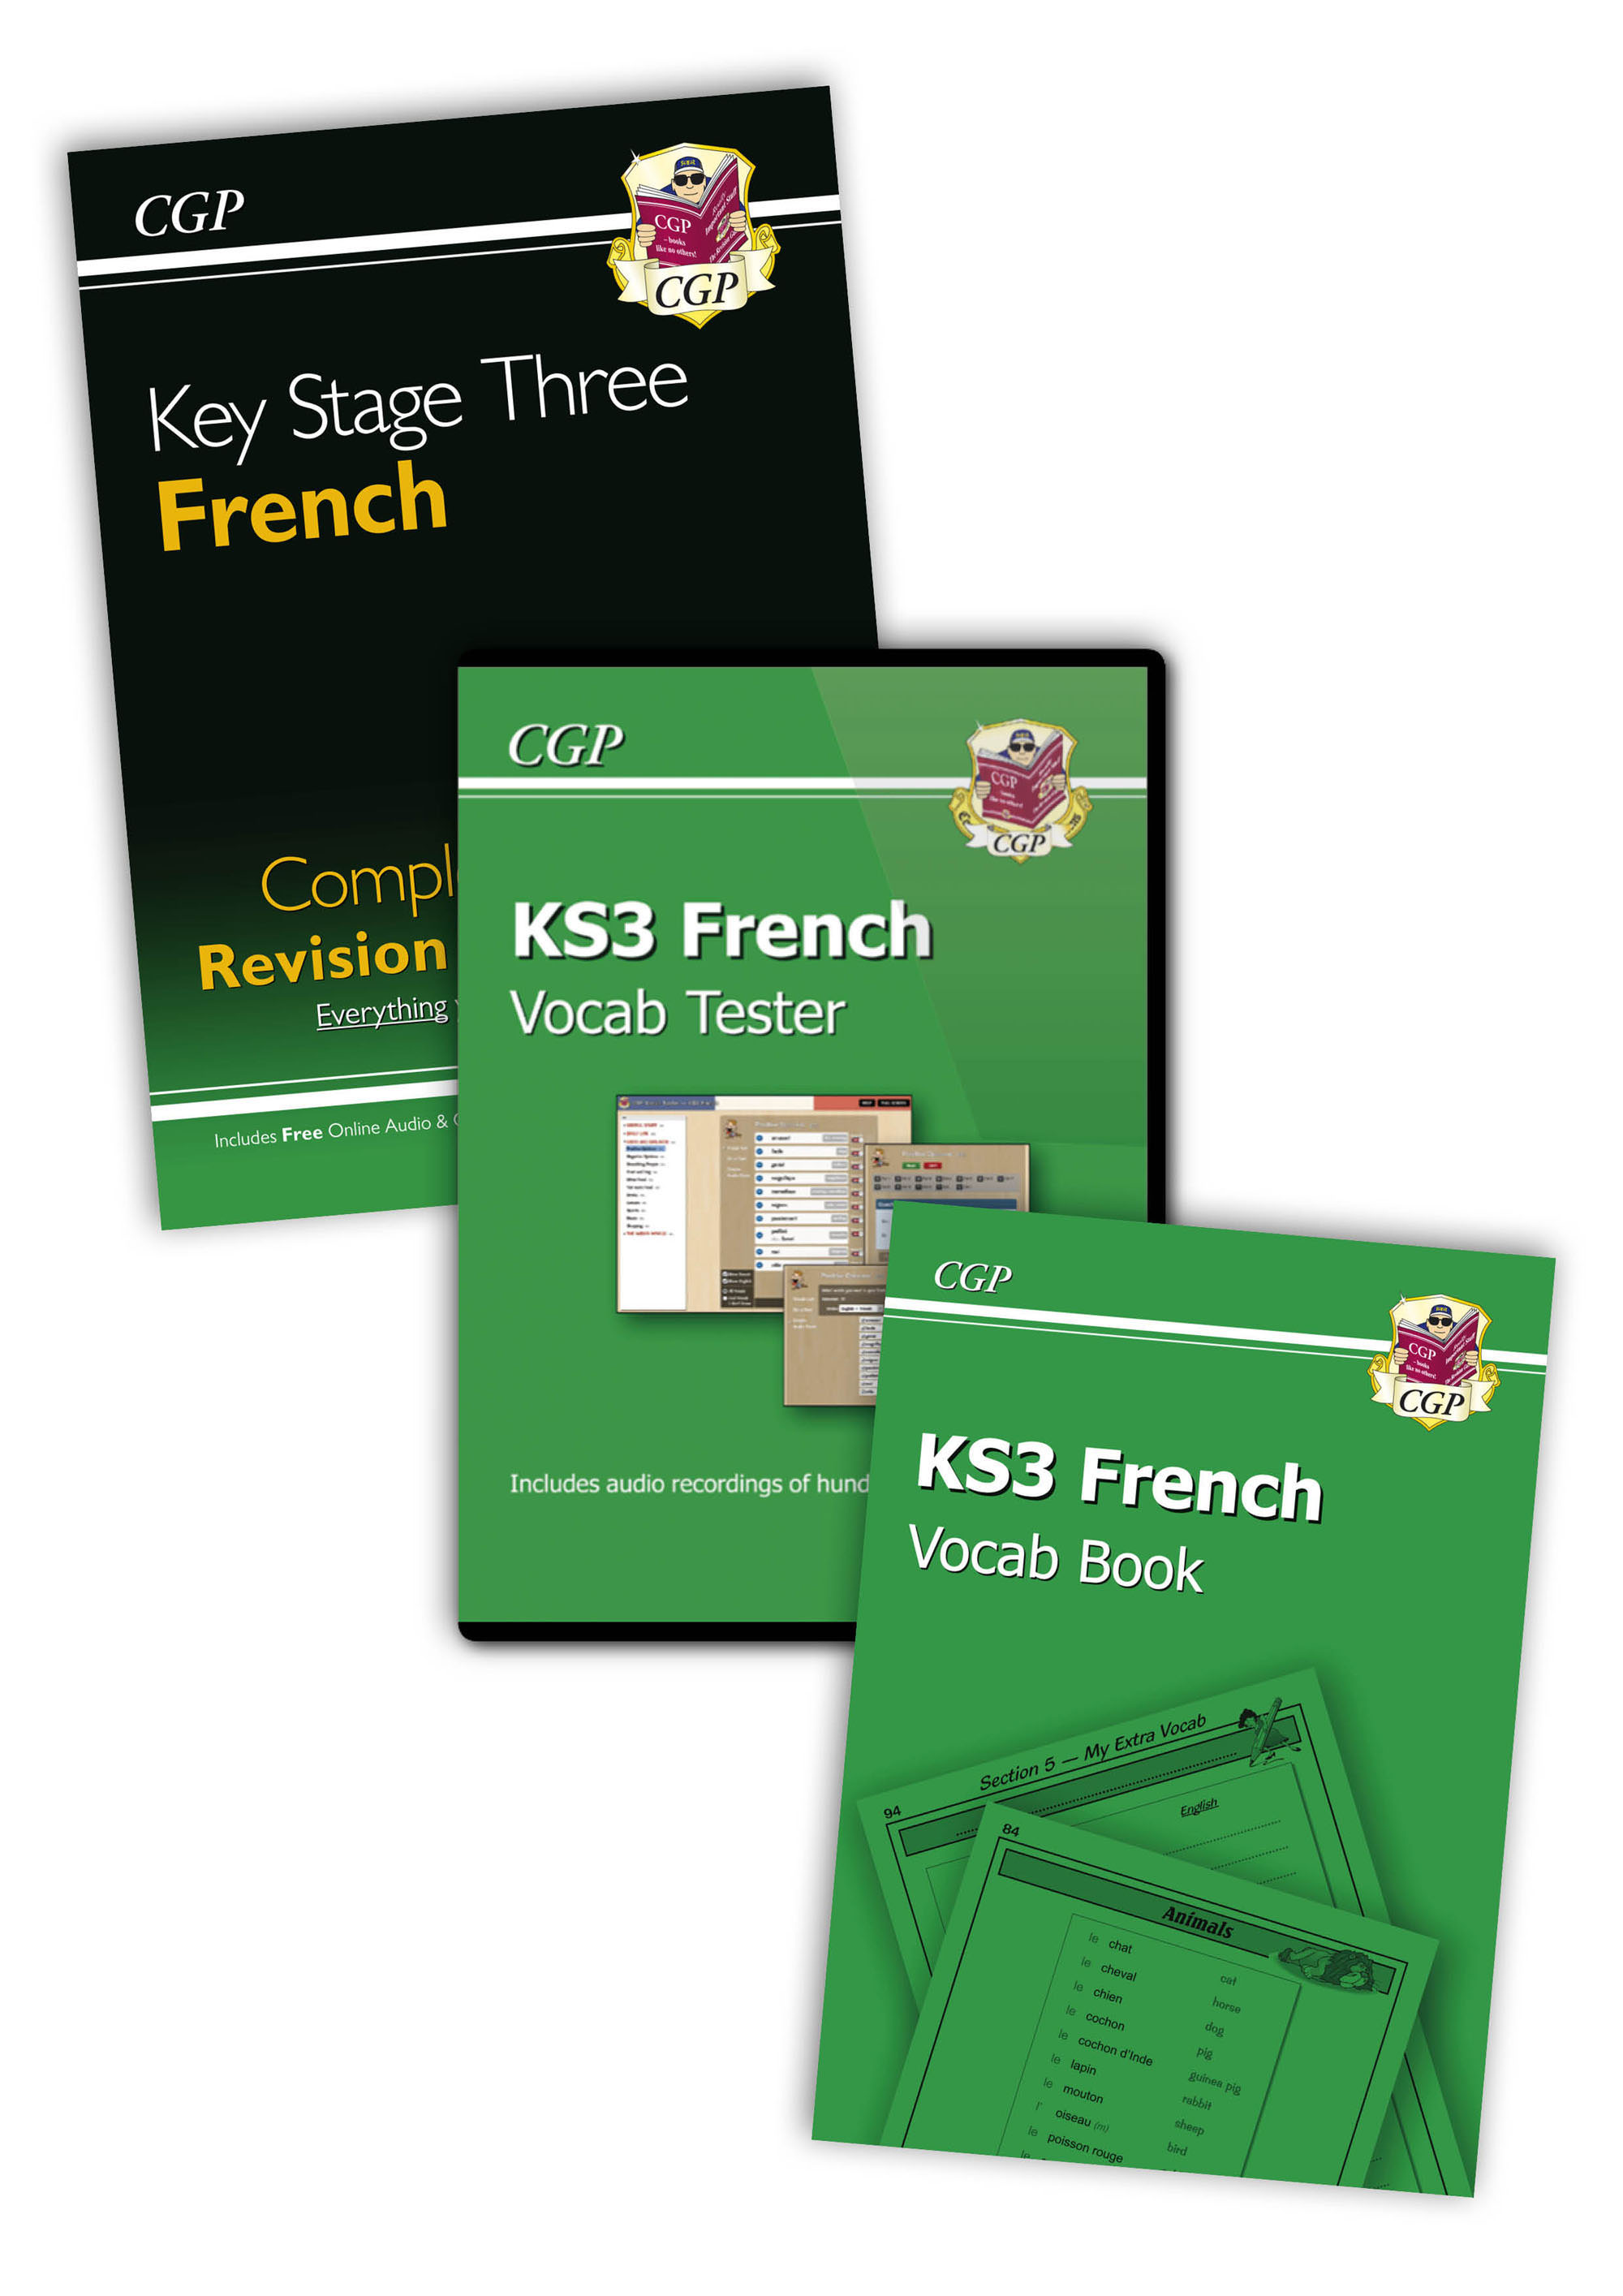 FHSB32 - New KS3 French Bundle